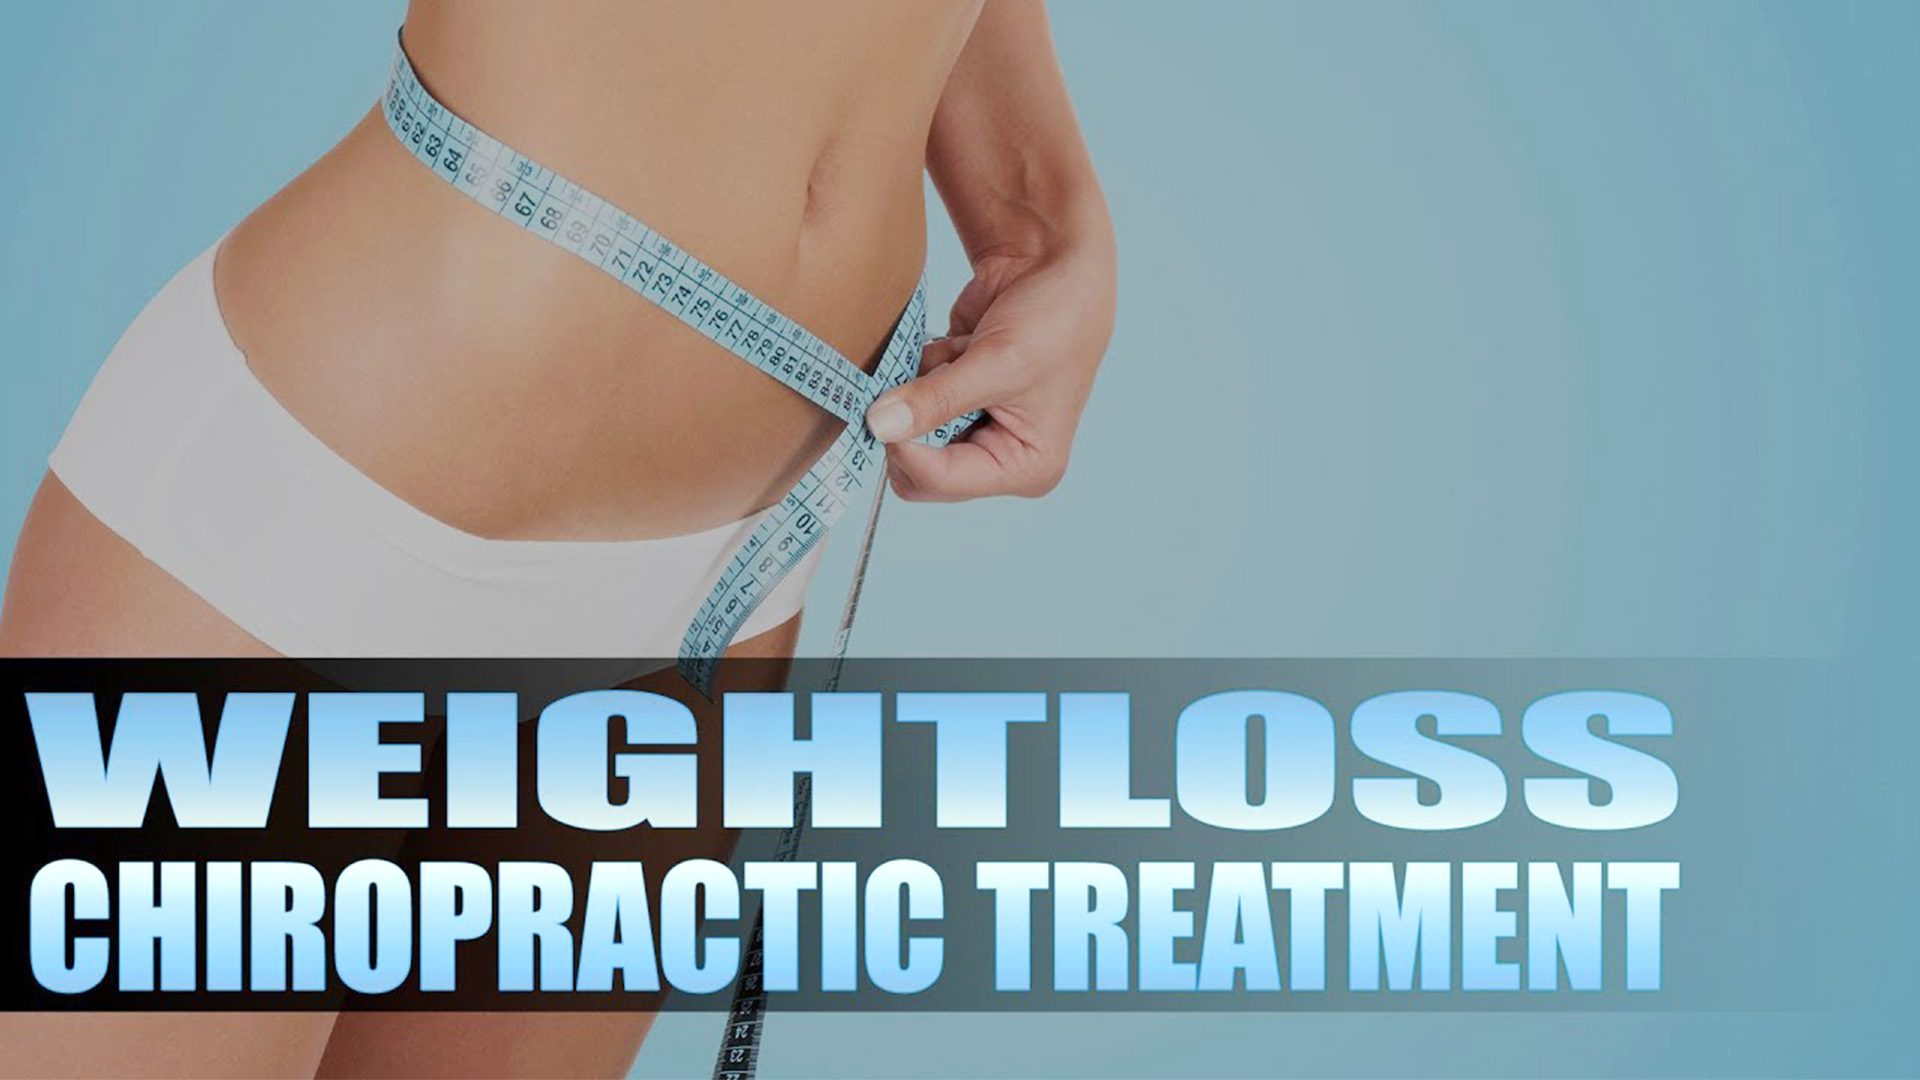 Weight Loss And Chiropractic Treatment | El Paso, TX ...